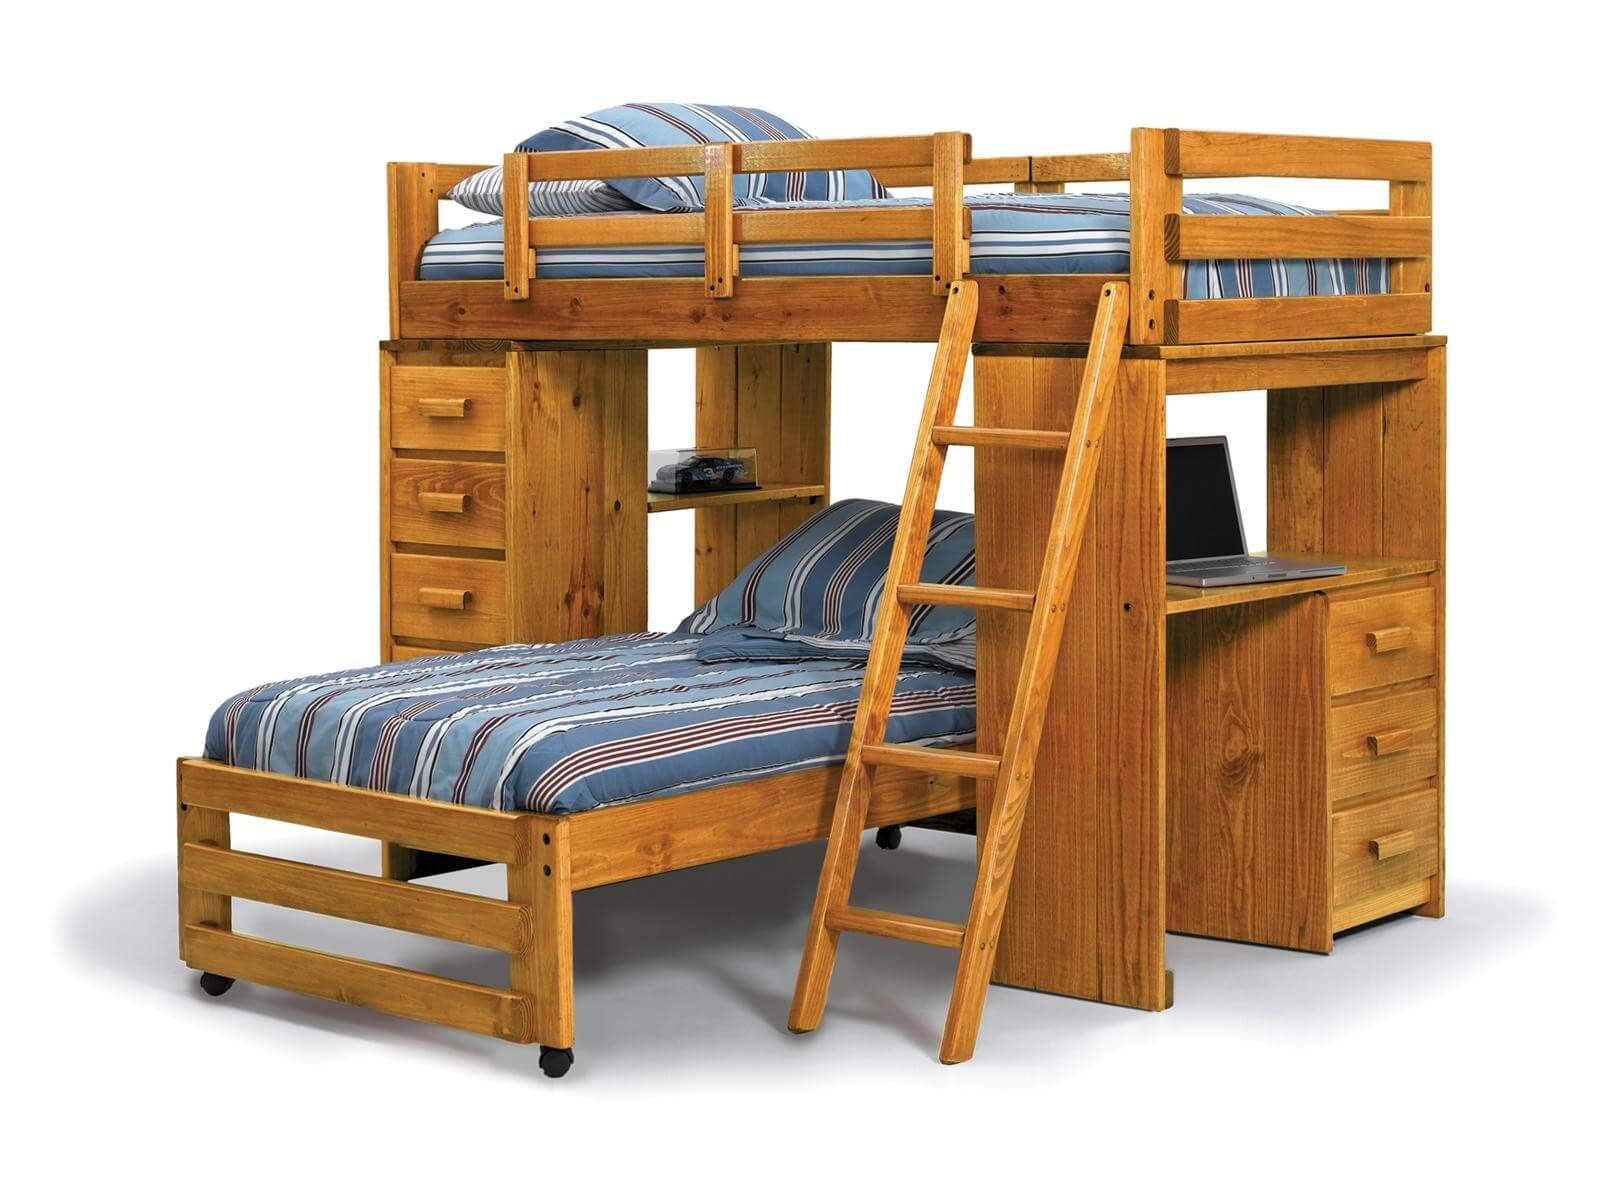 This pine L-shaped bunk with twin-over-twin includes a desk area, open shelving and drawers. The lower bed is on wheels and is detachable from the main unit.